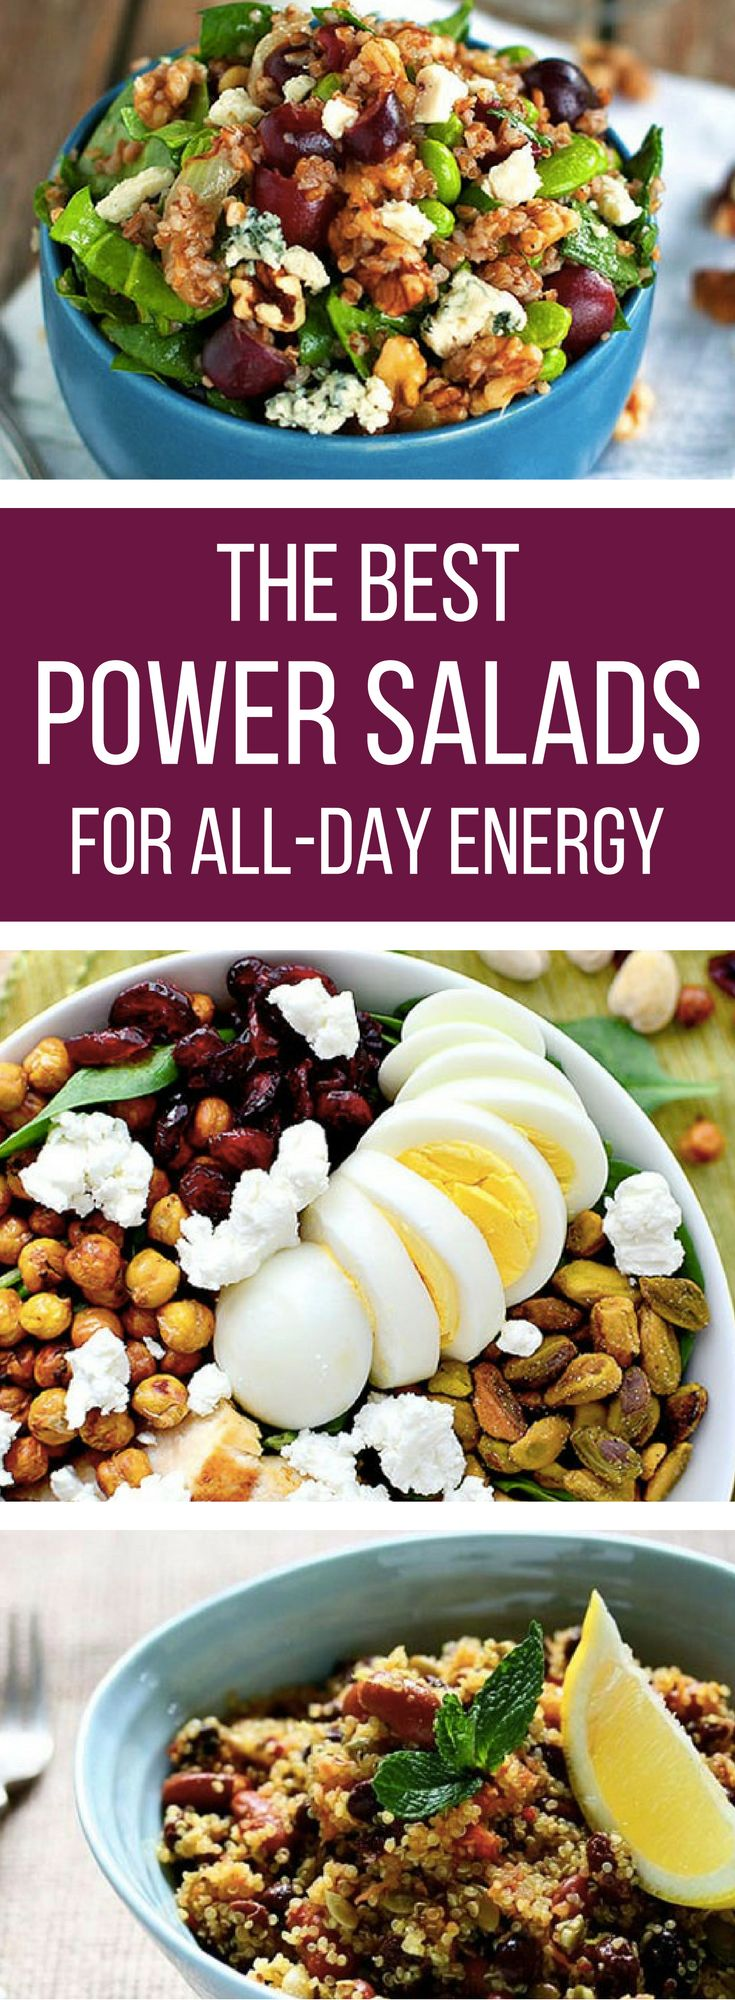 Rock your day with these power-packed salads! Chock full of superfoods, these salad recipes are hearty enough to see you through even the longest day at the office. // spryliving.com